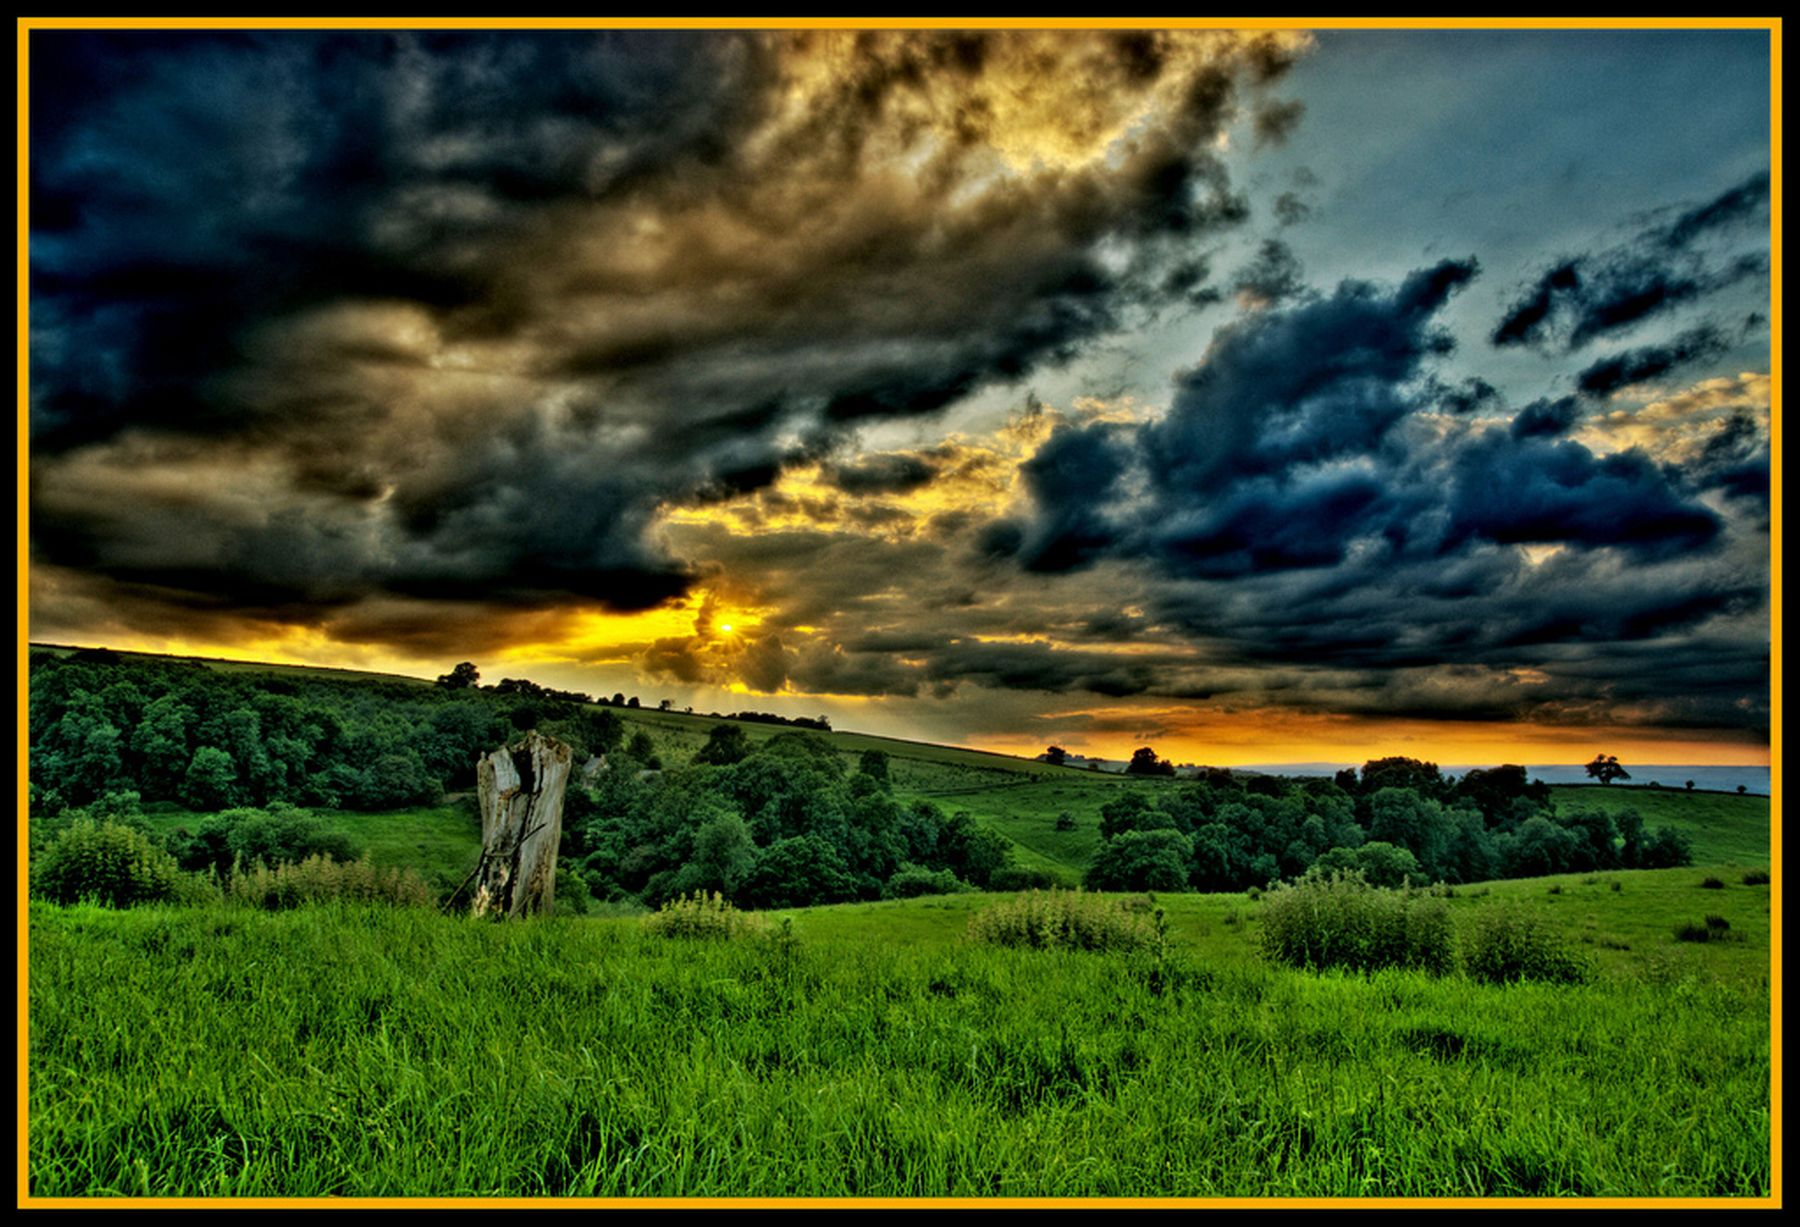 A glorious sunset with dark clouds over a field of grass